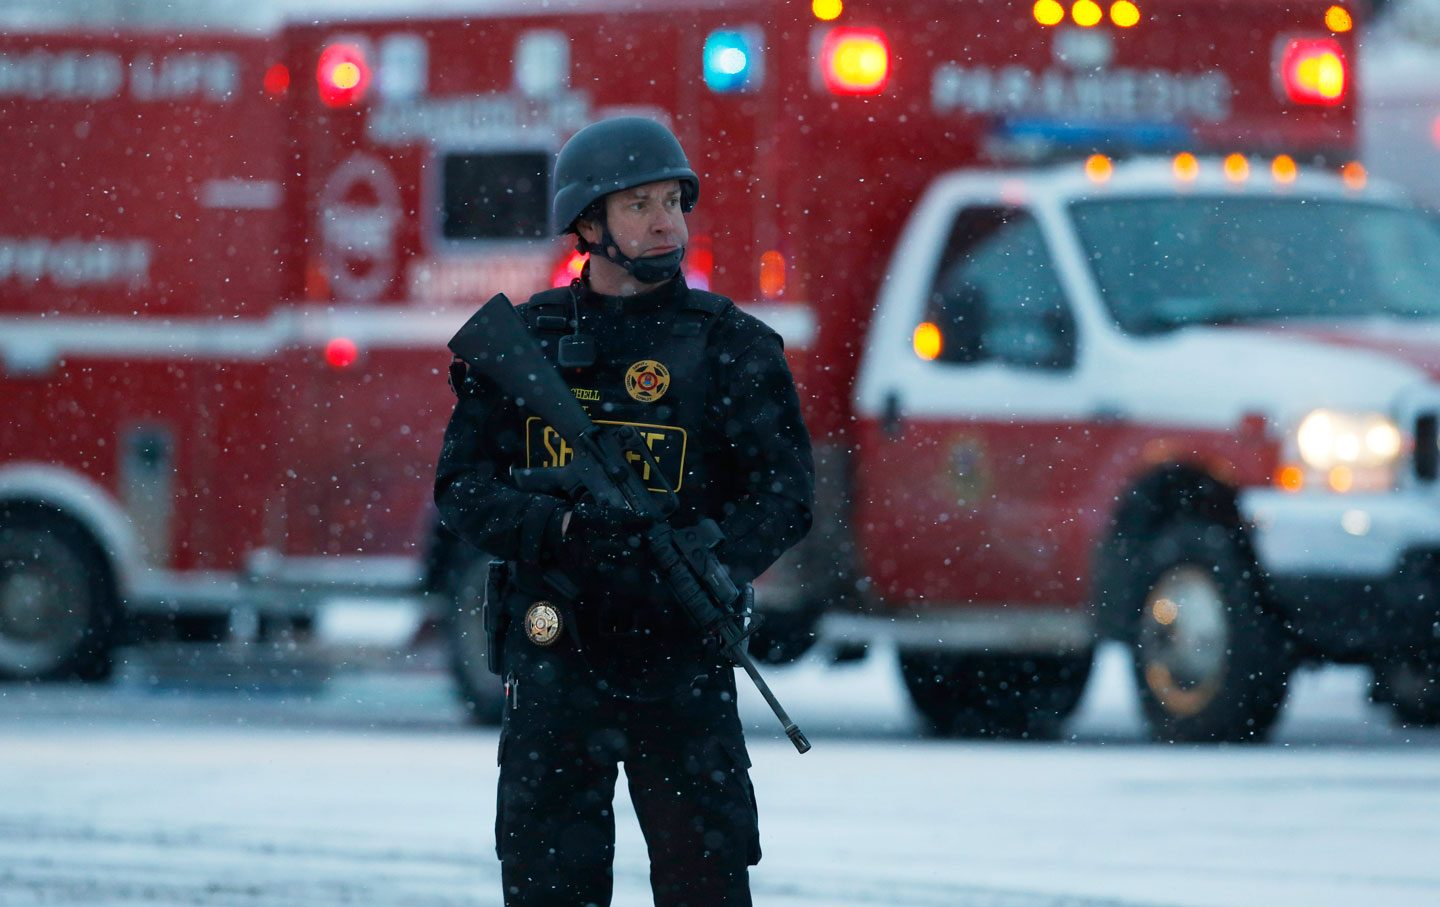 http://www.thenation.com/wp-content/uploads/2015/11/planned_parenthood_shooting_colorado_police_ap_img.jpg